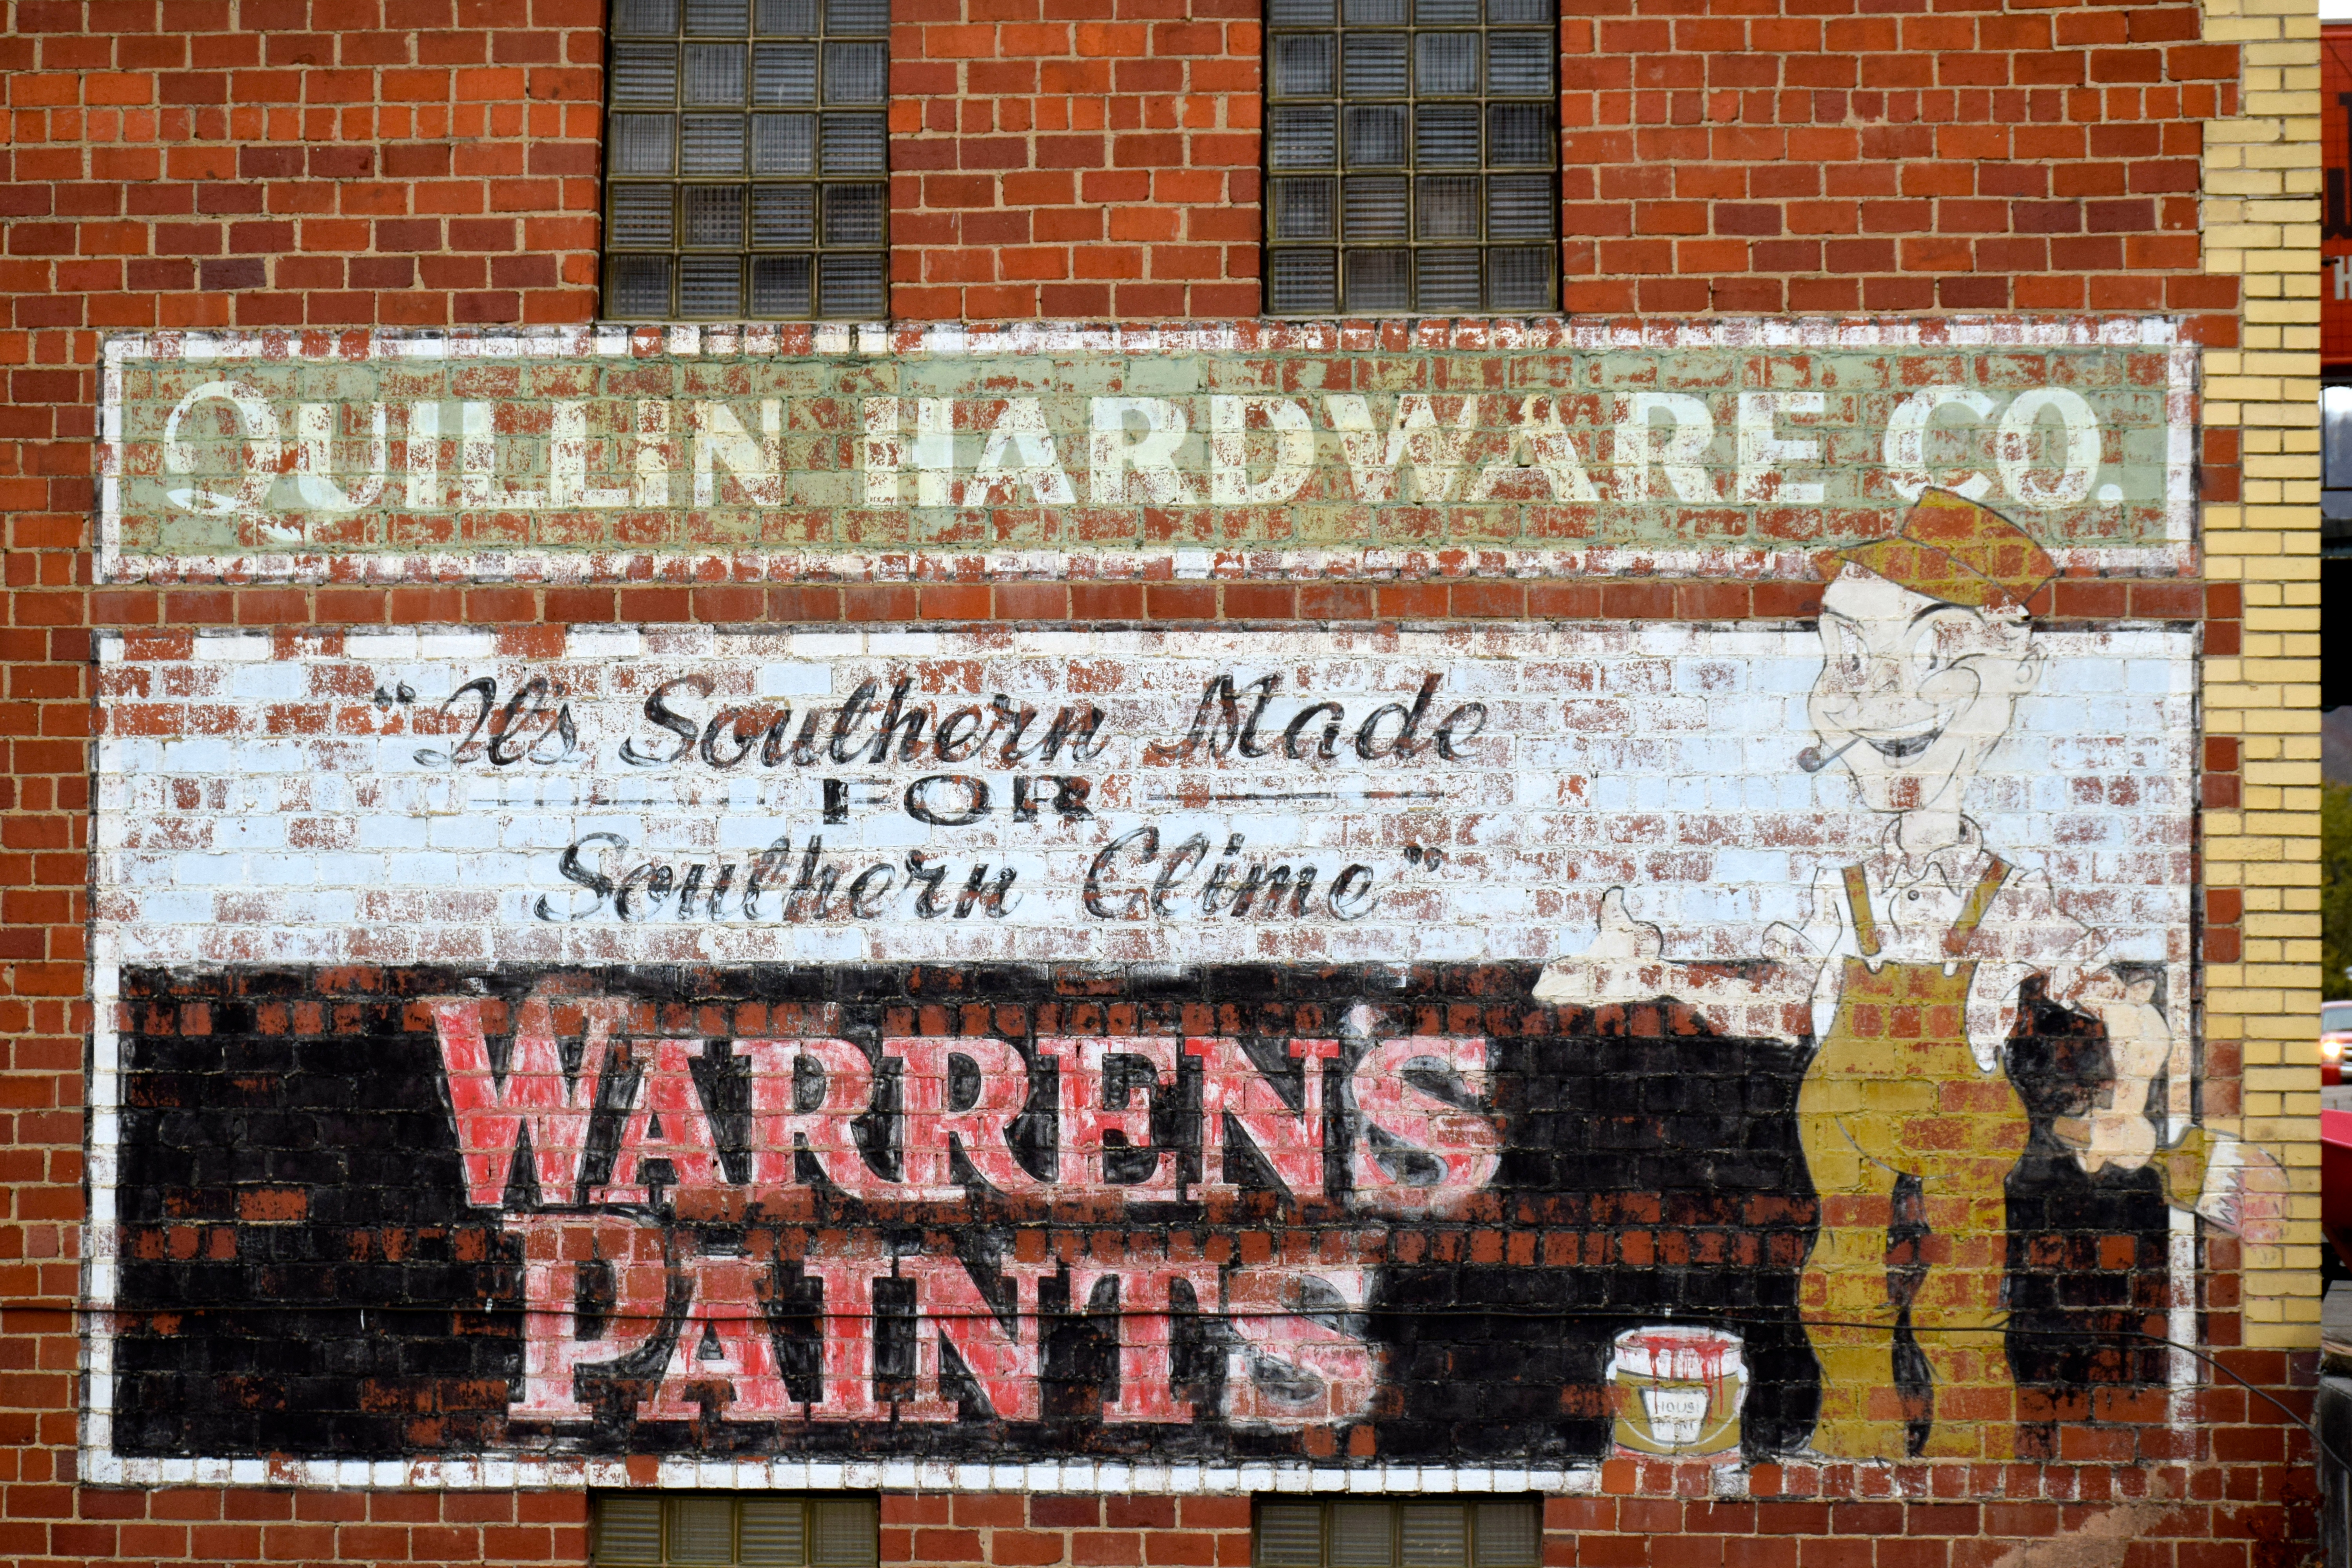 Quillin Hardware Company/Warren's Paints ghost sign - Gate City, Virginia U.S.A. - November 18, 2017